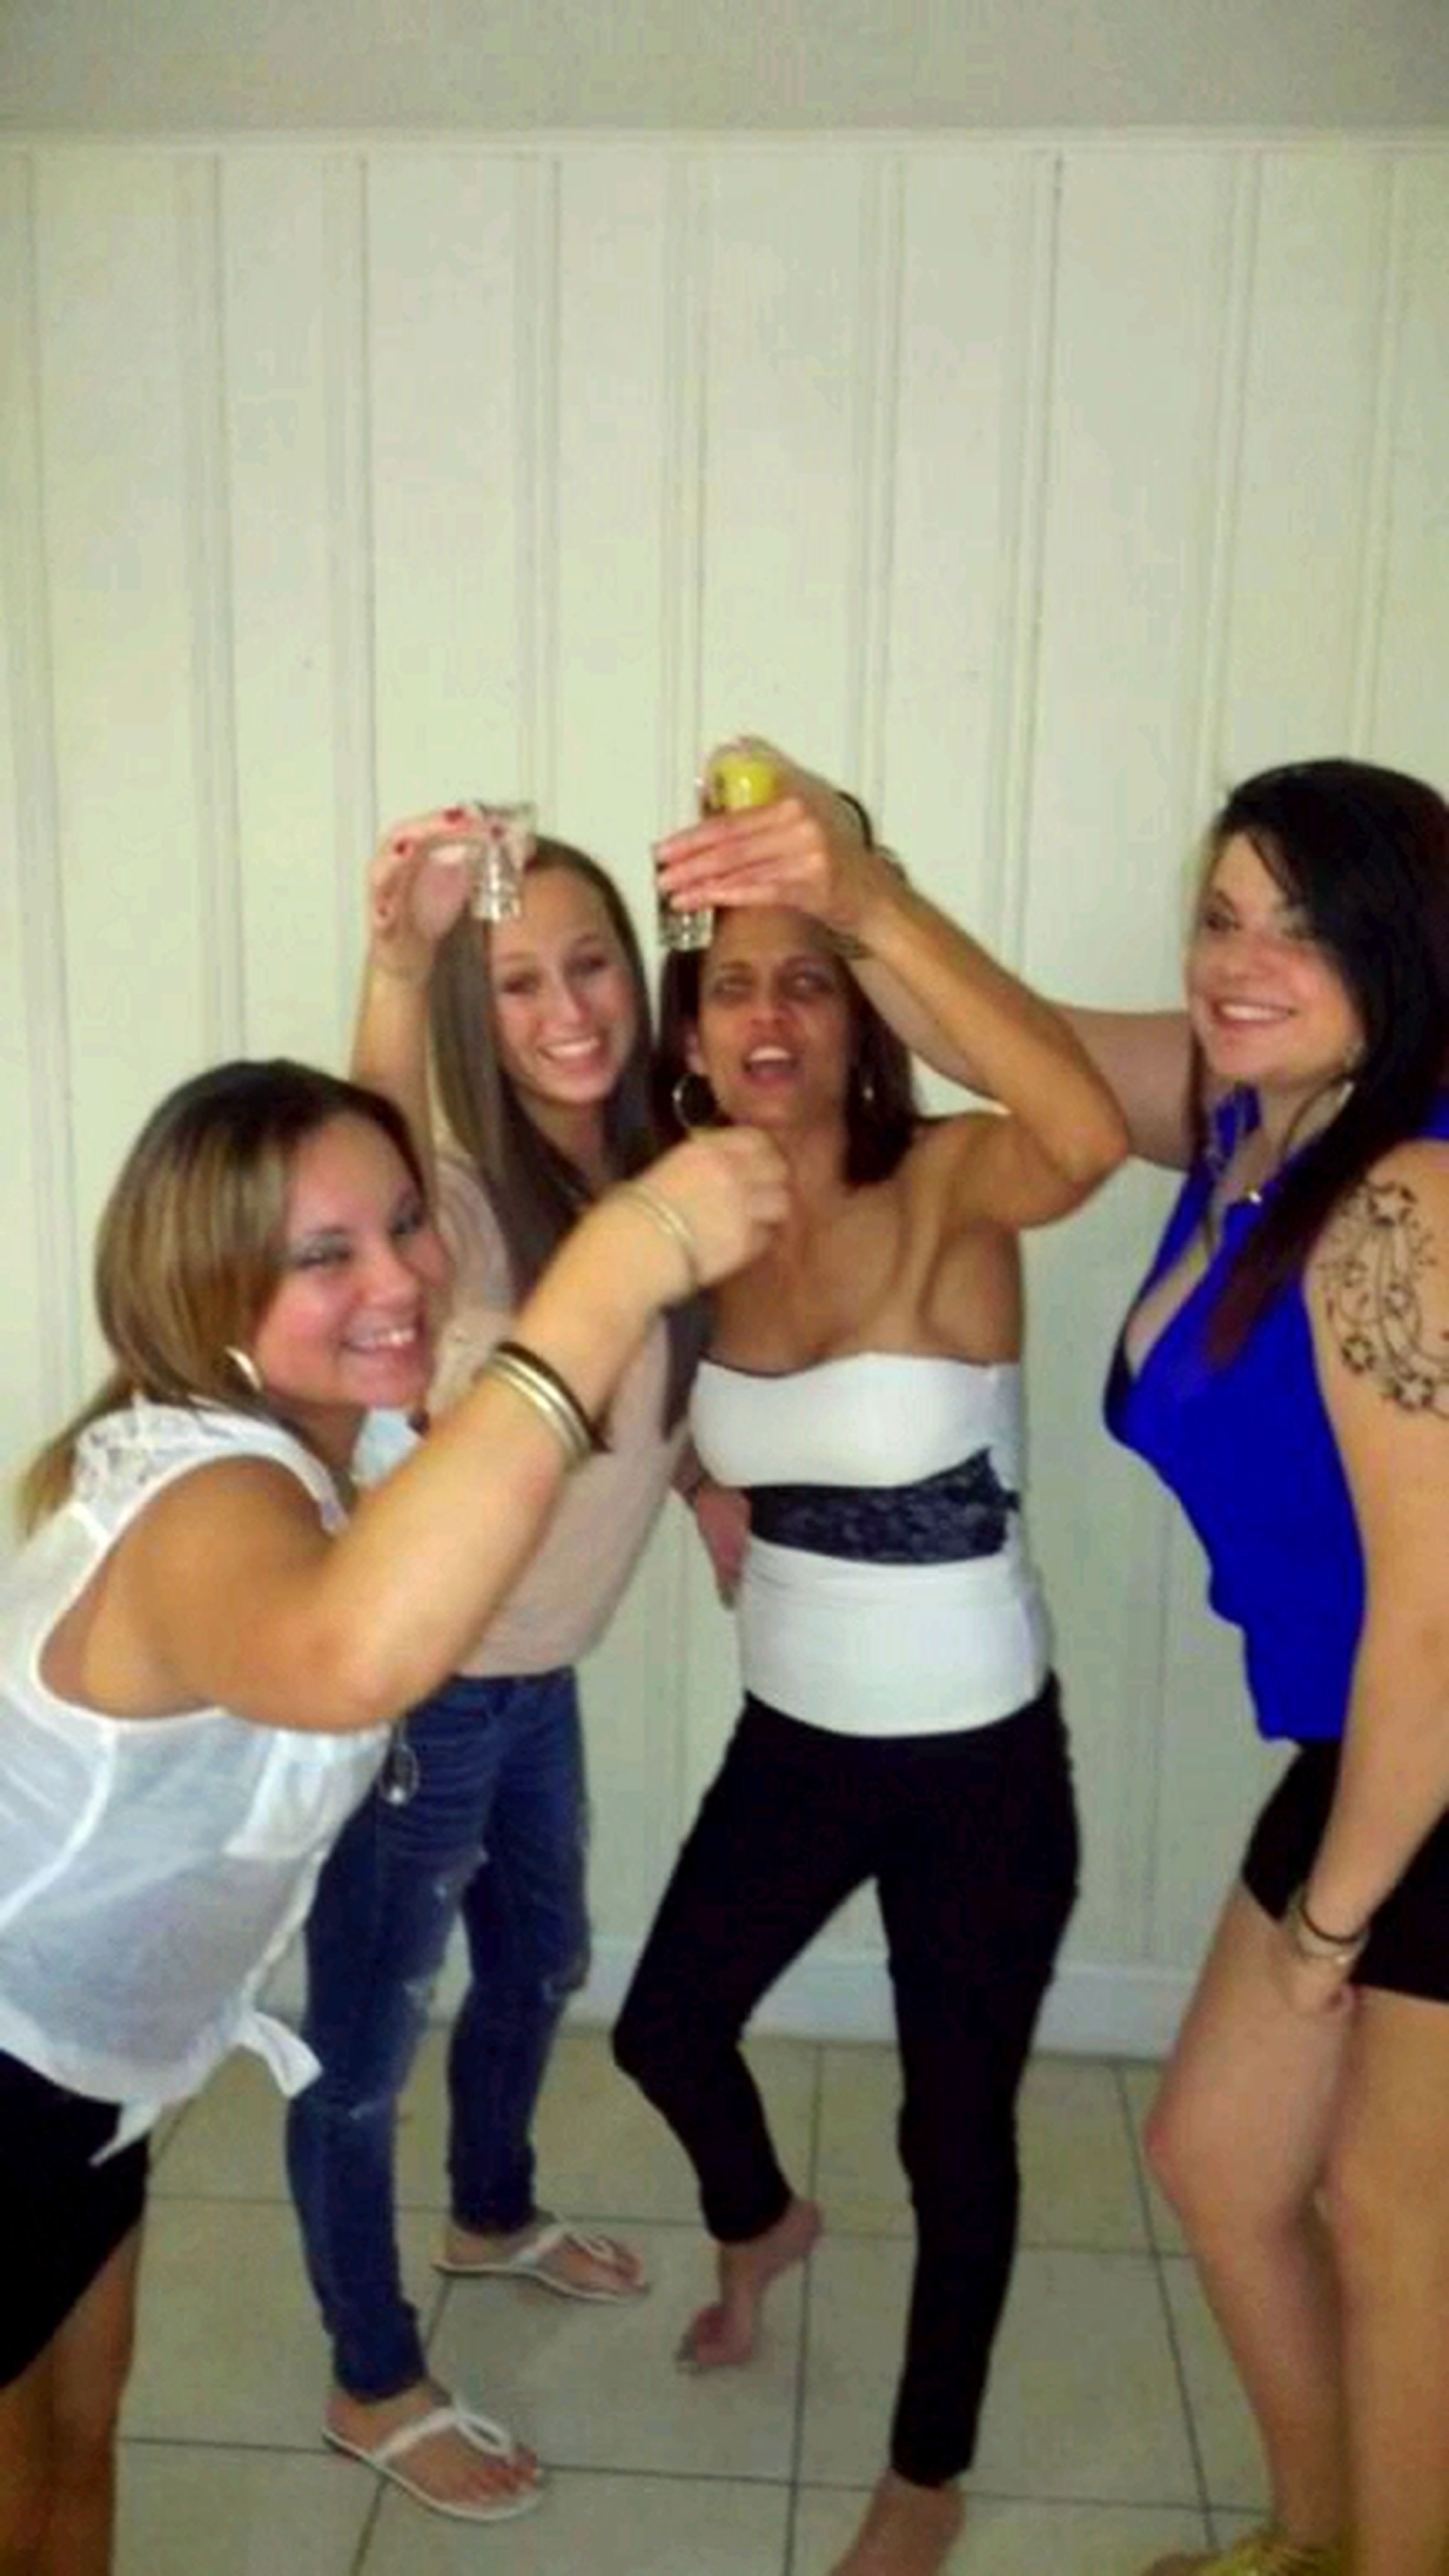 New years with my babies <3